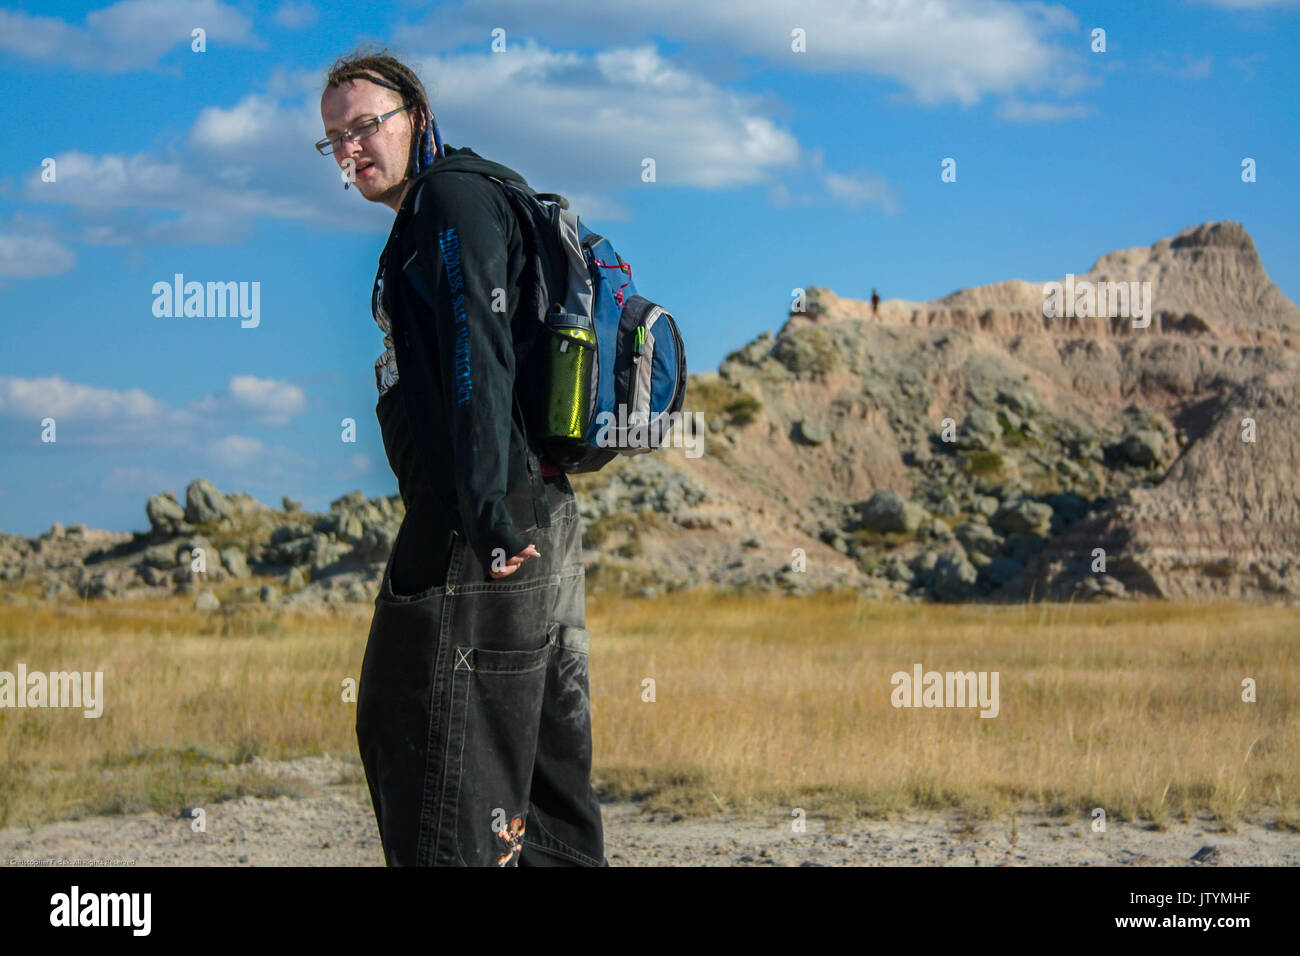 1b280b886fd Alternative punk guy at the badlands national park stock photo jpg 1300x956 Punk  guy